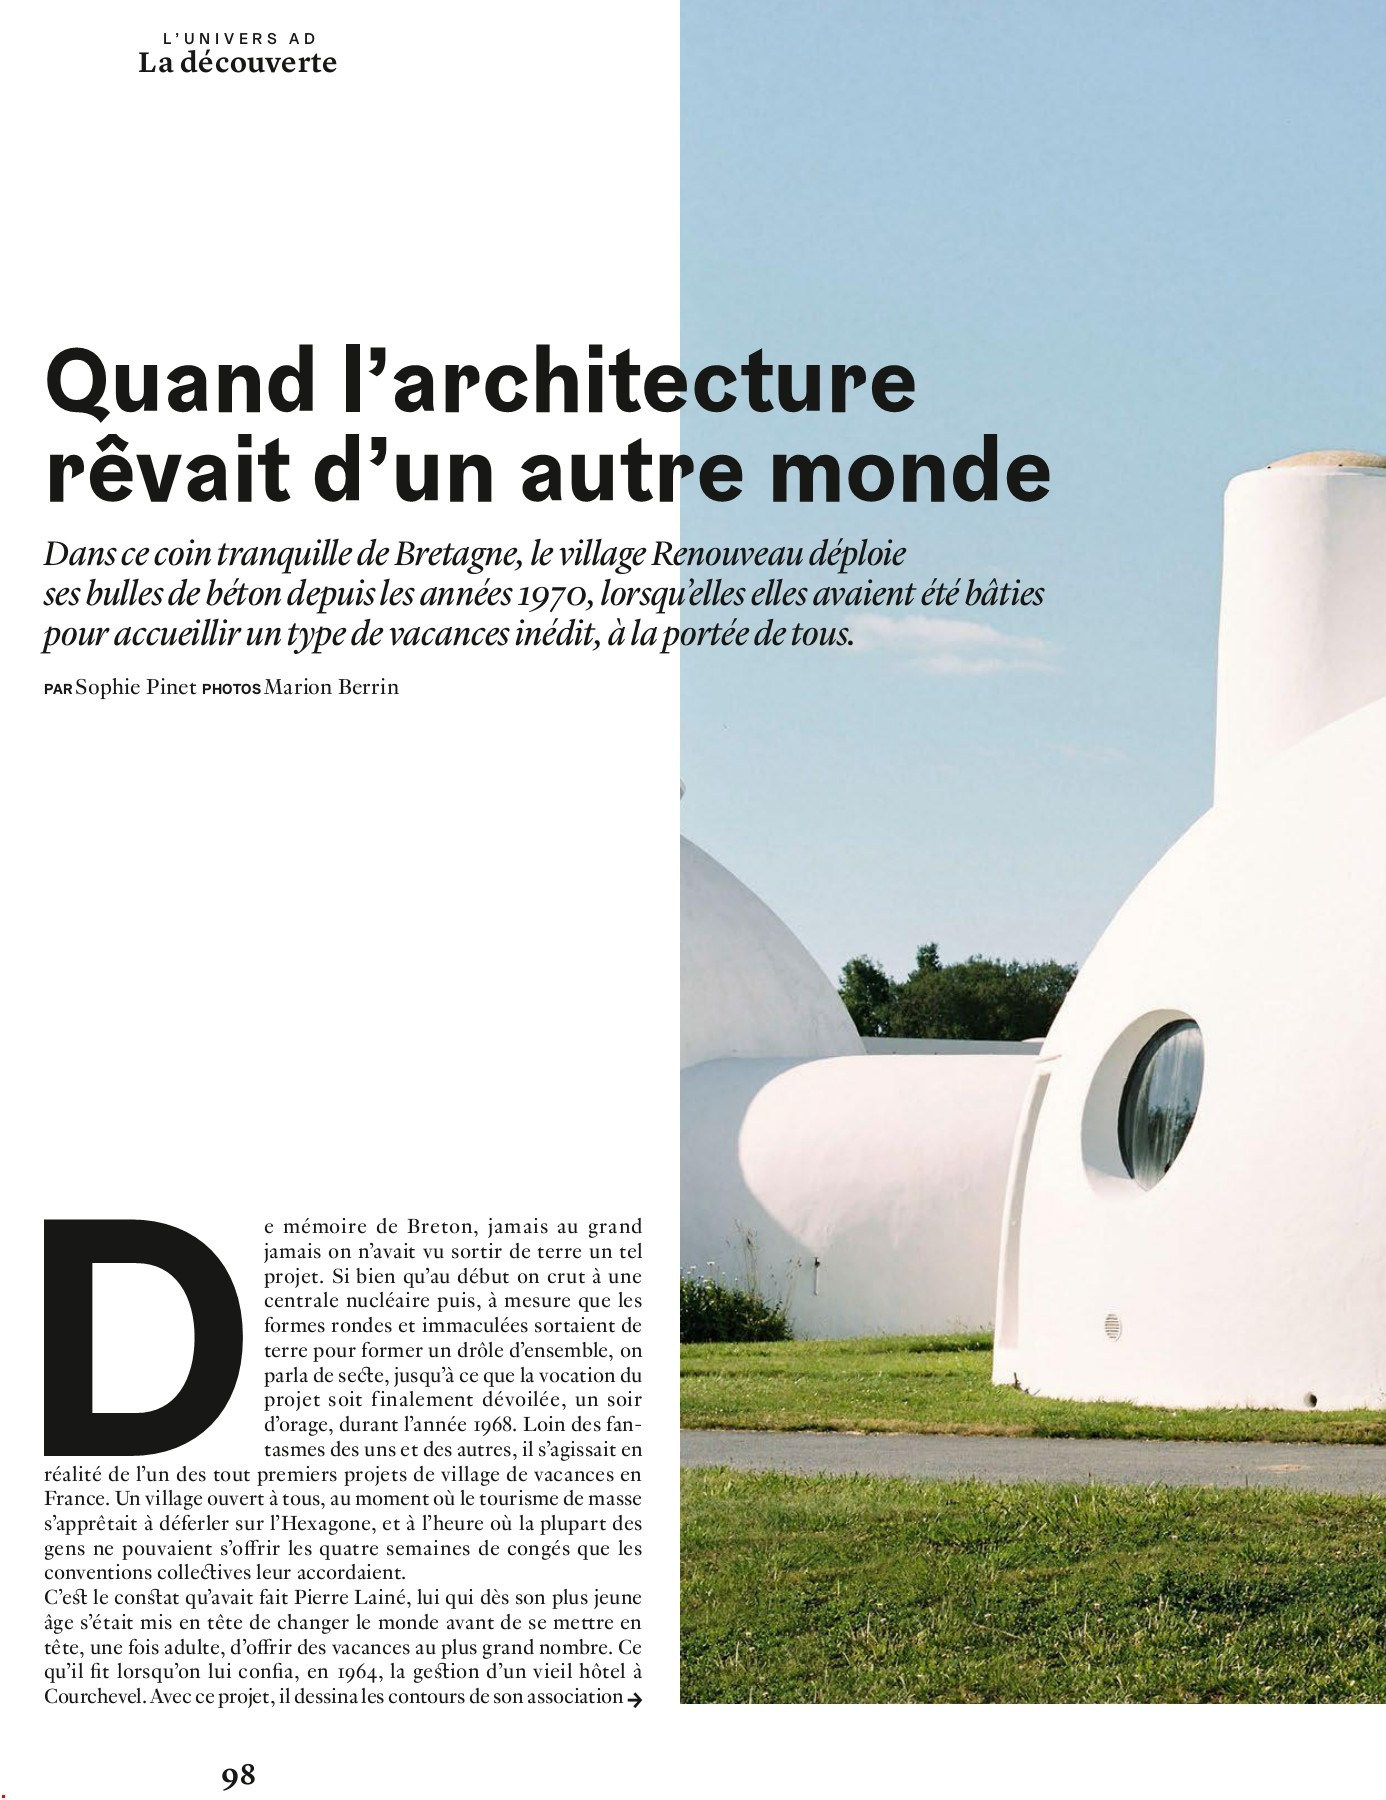 Miroir De Sorcière Le Bon Coin architectural digest france_sepoct 2019-flip book pages 101